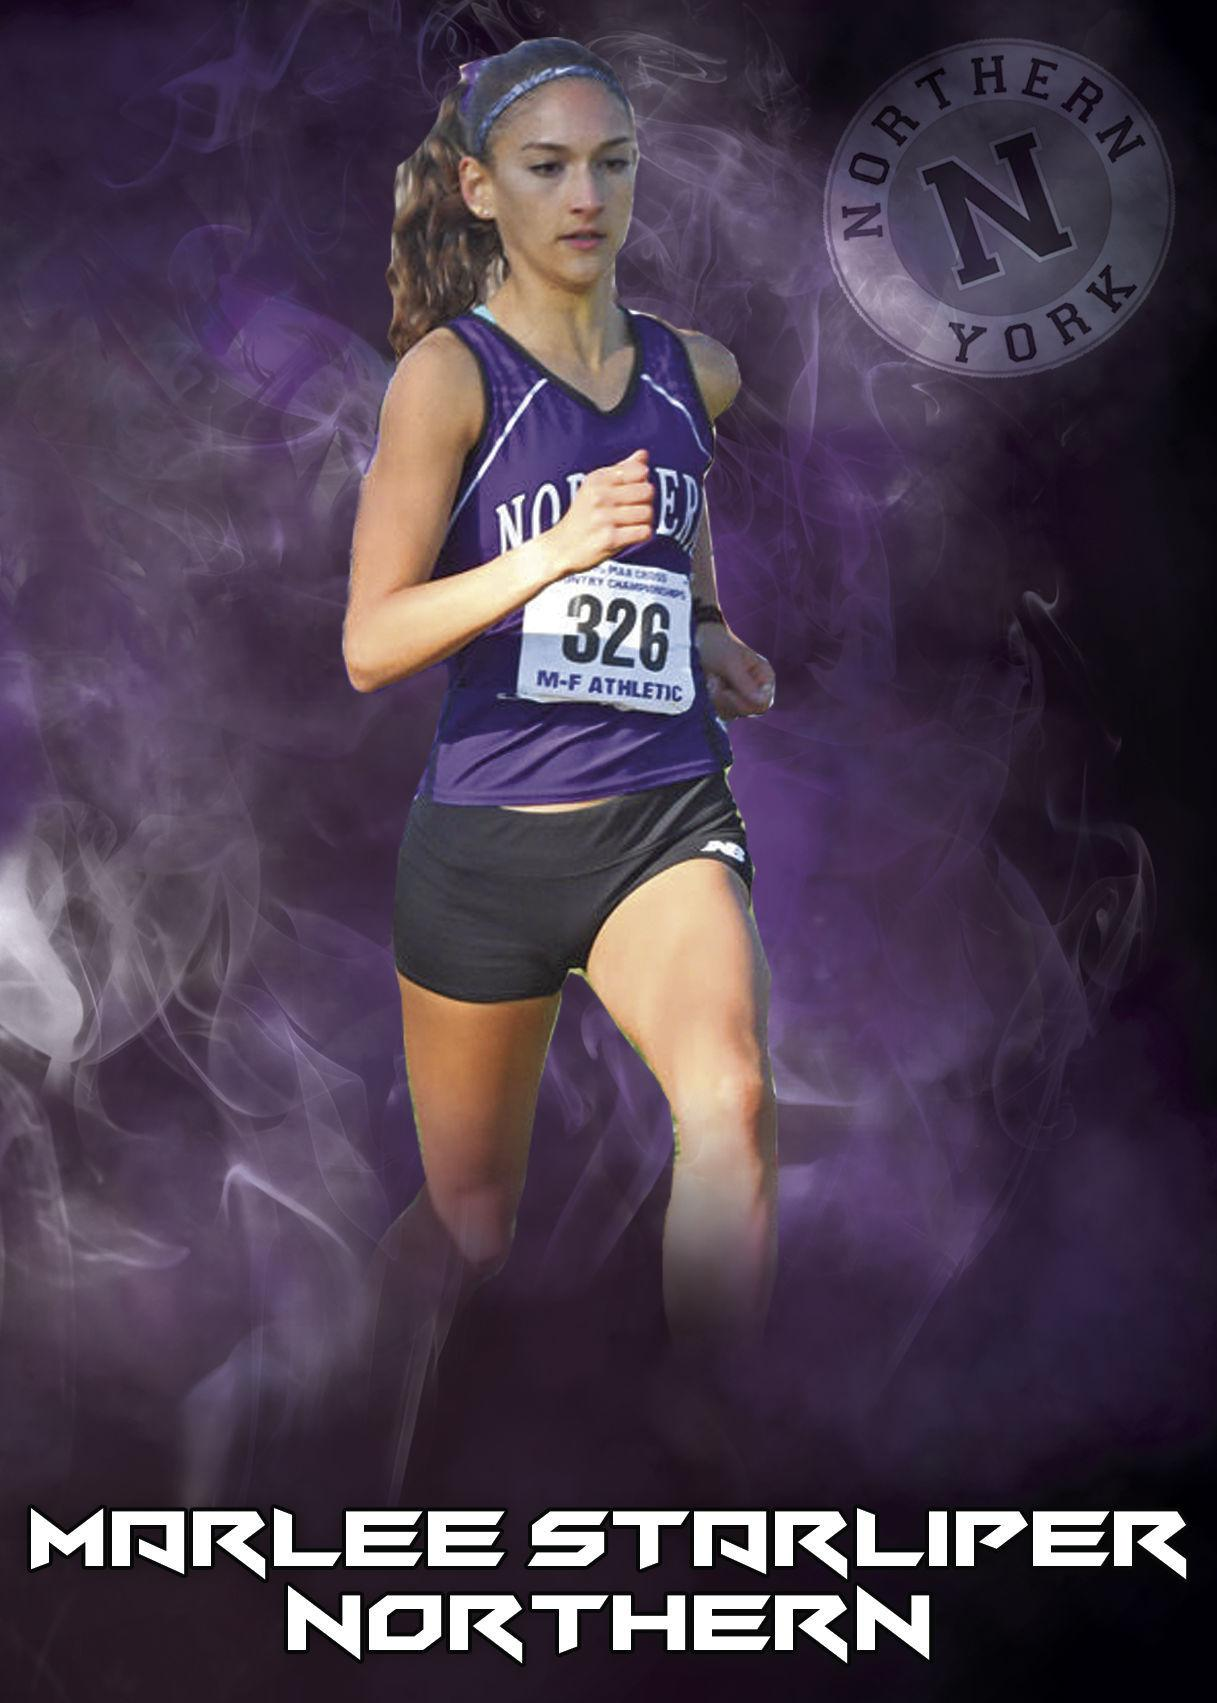 Runner of the Year: Marlee Starliper, Northern